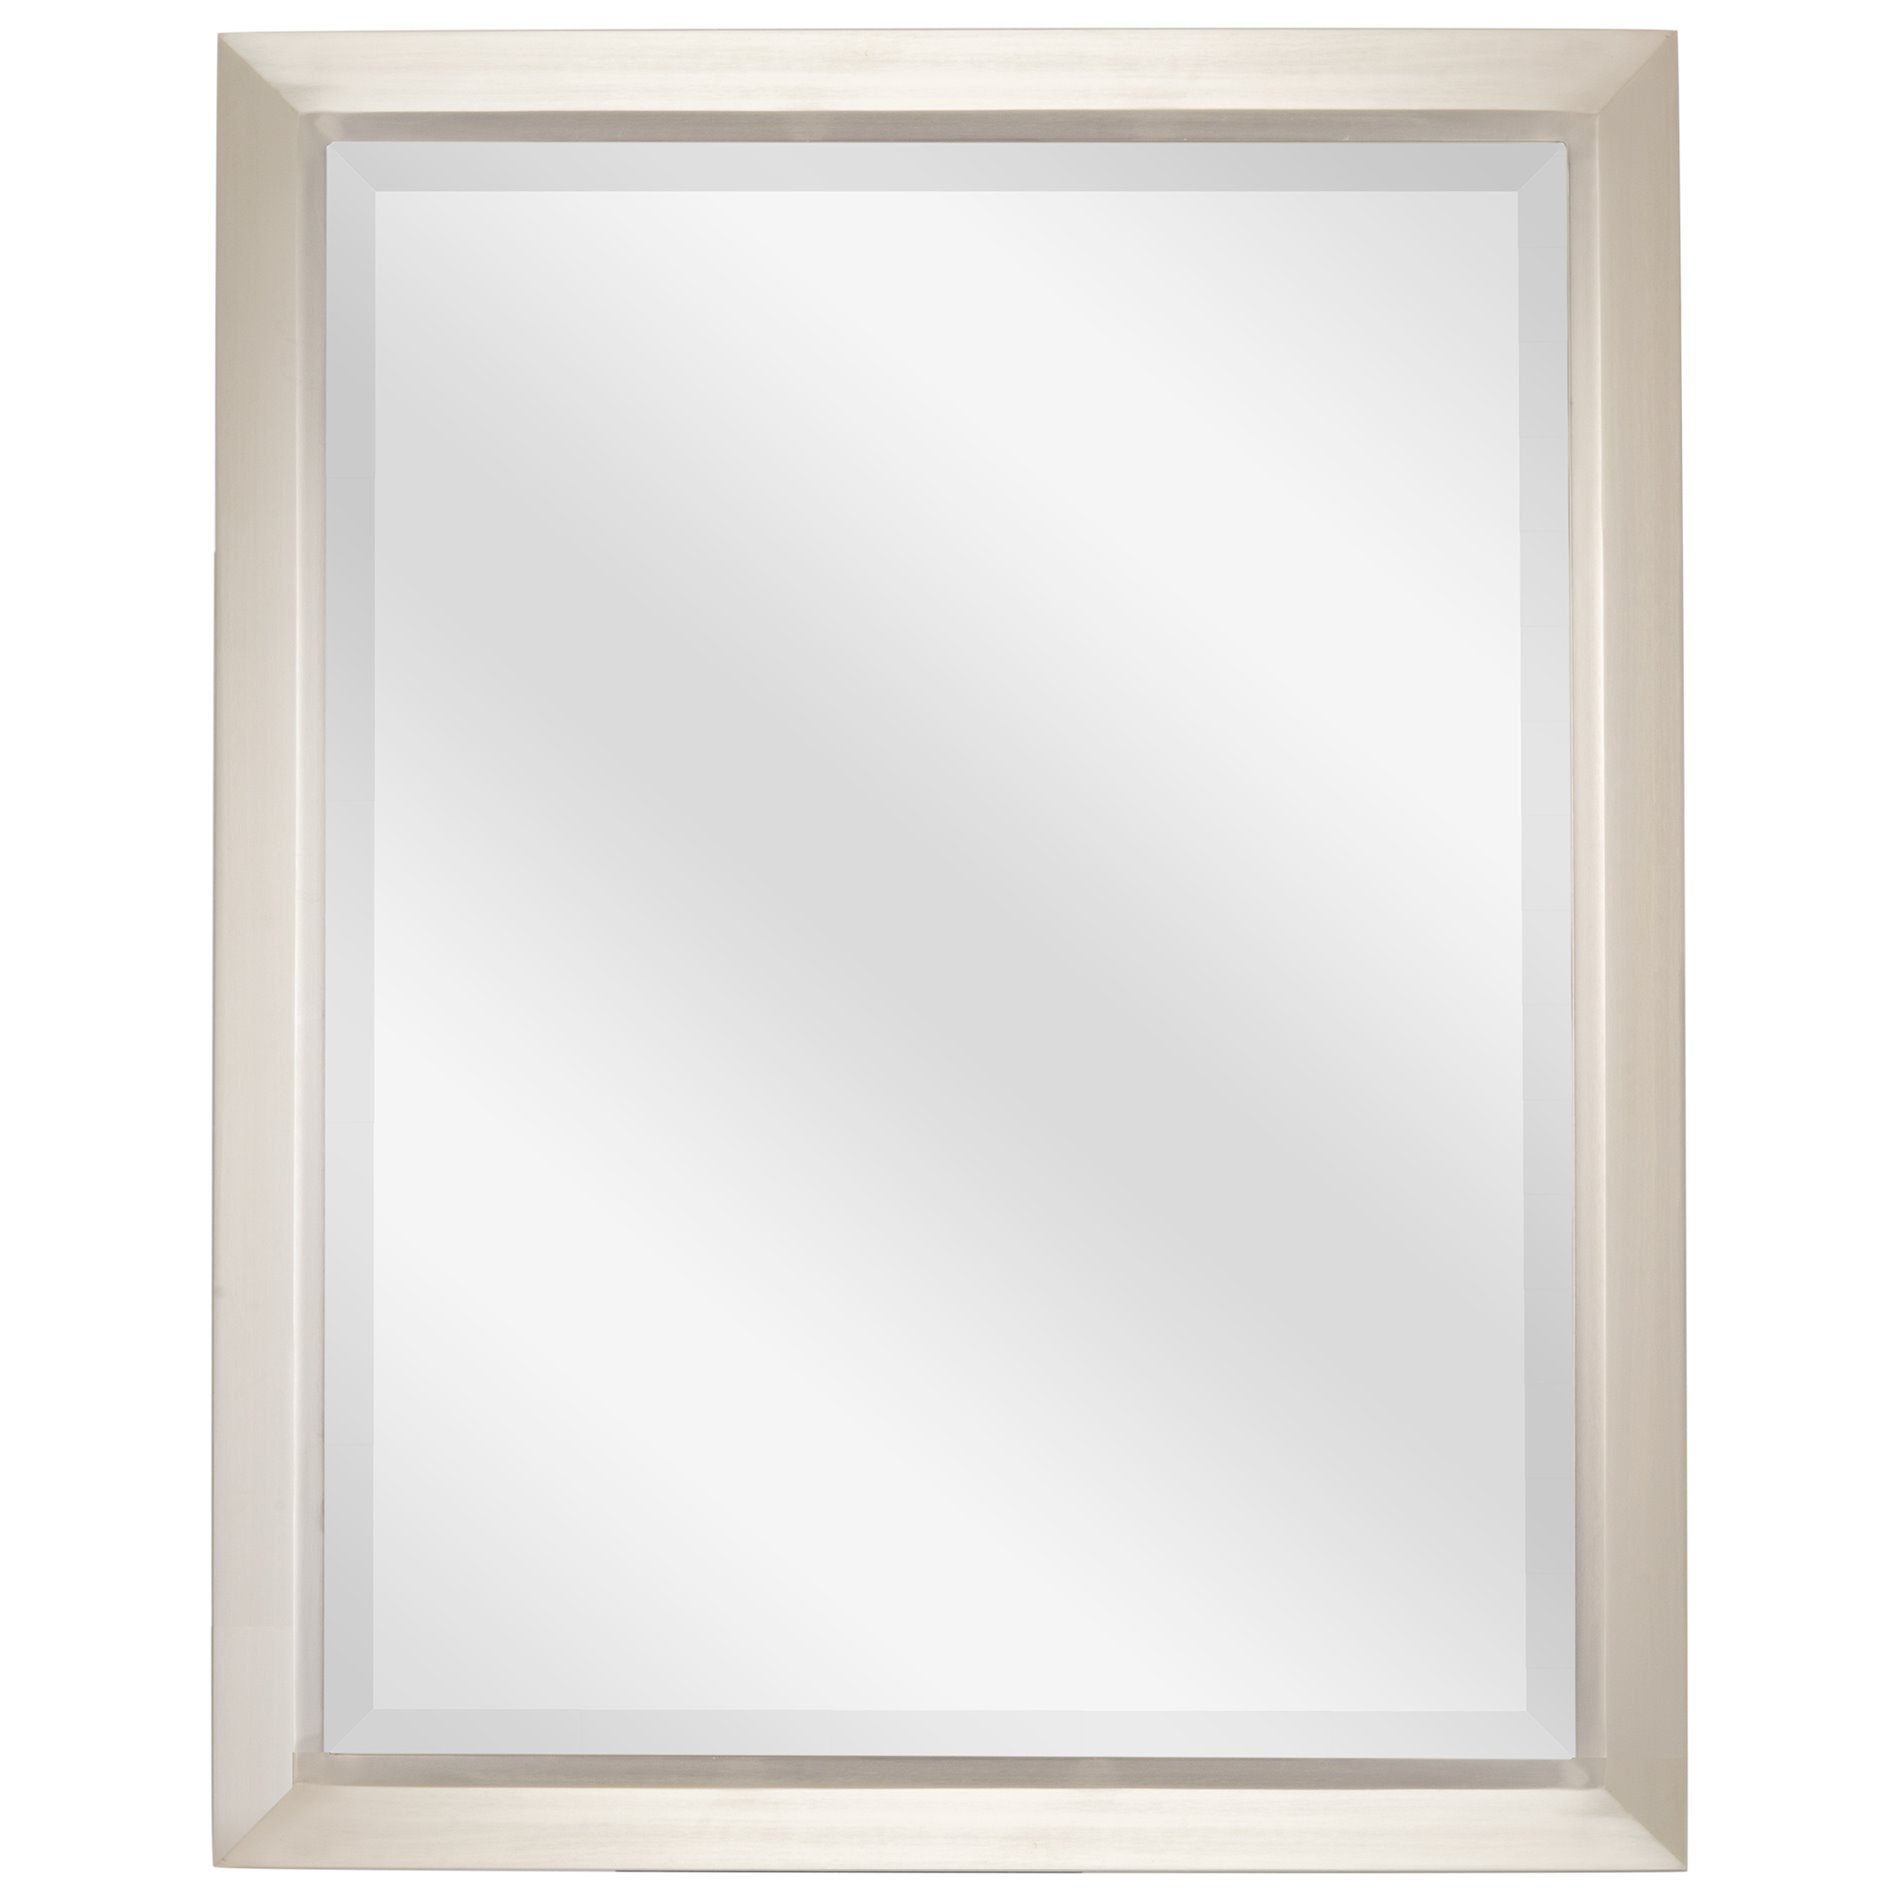 "Revel Madison 30""x 24"" Large Modern Rectangle Decorative beveled mirror + Brushed Nickel Finish by"